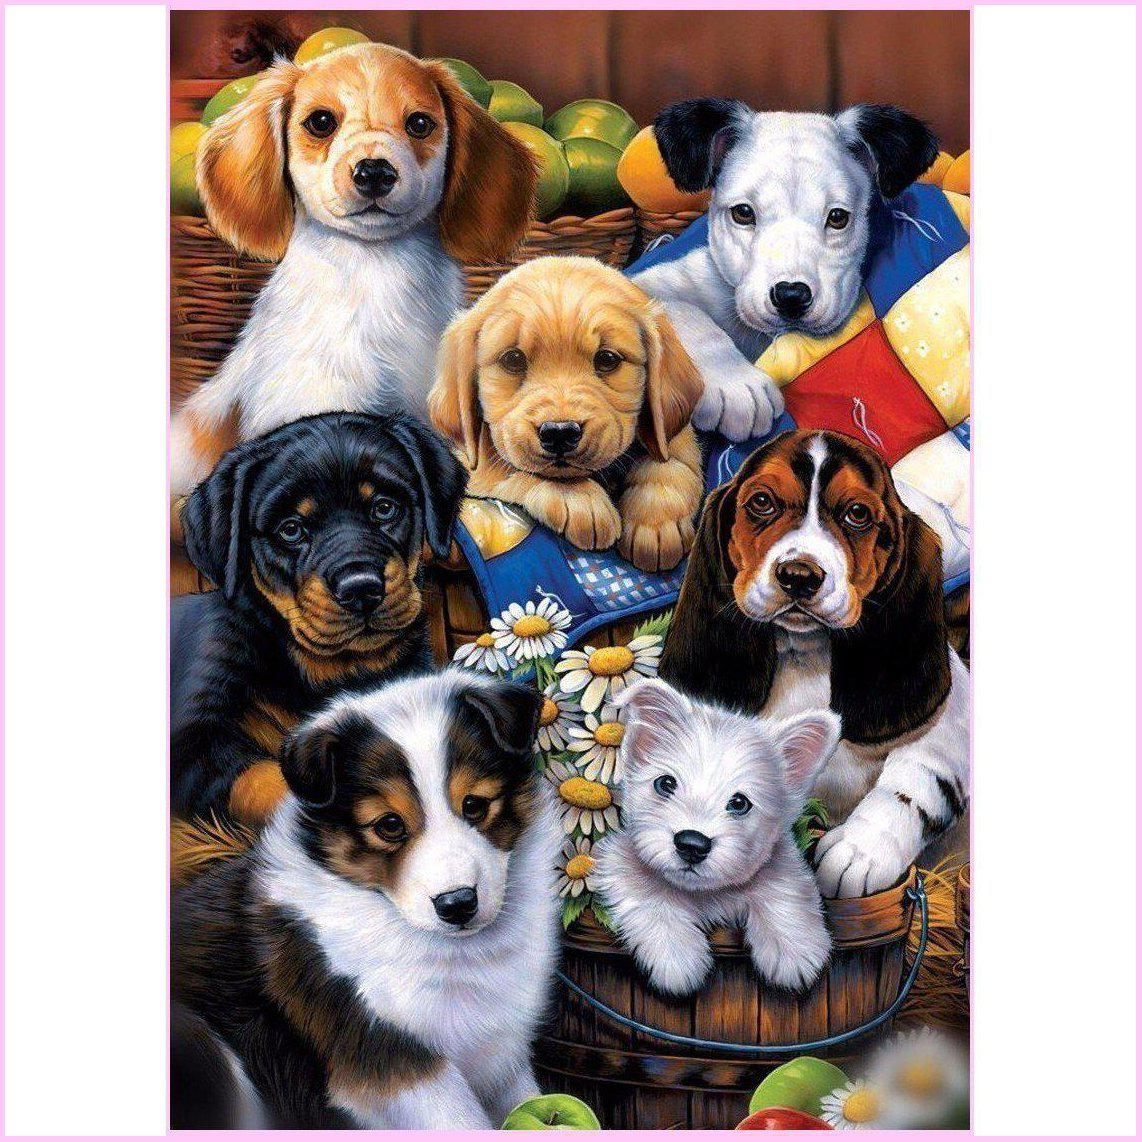 Backyard Dogs-Diamond Painting Kit-30x40cm (12x16 in)-Square-Heartful Diamonds